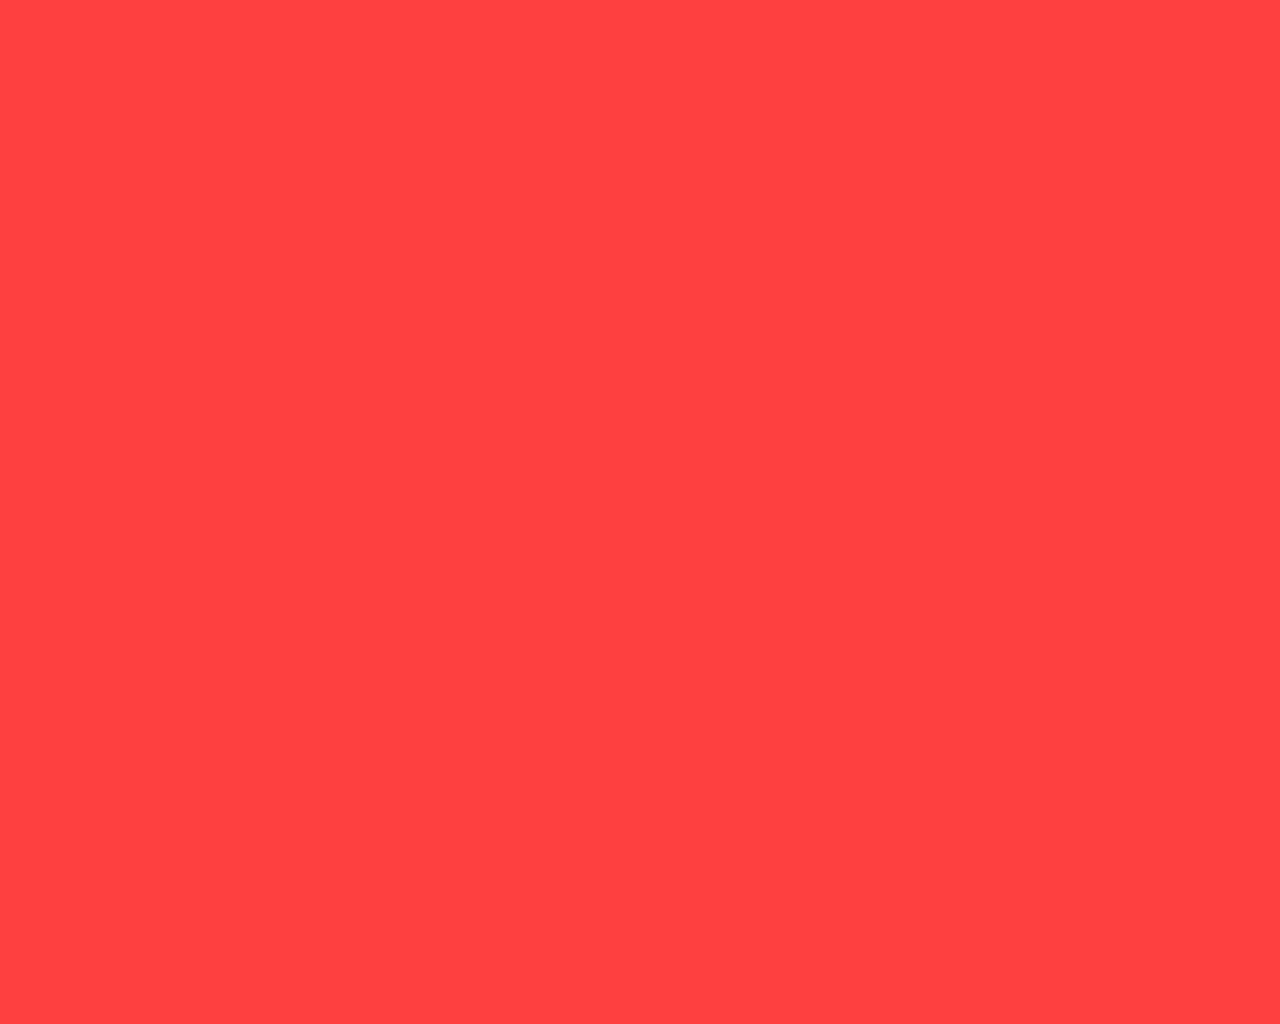 1280x1024 Coral Red Solid Color Background